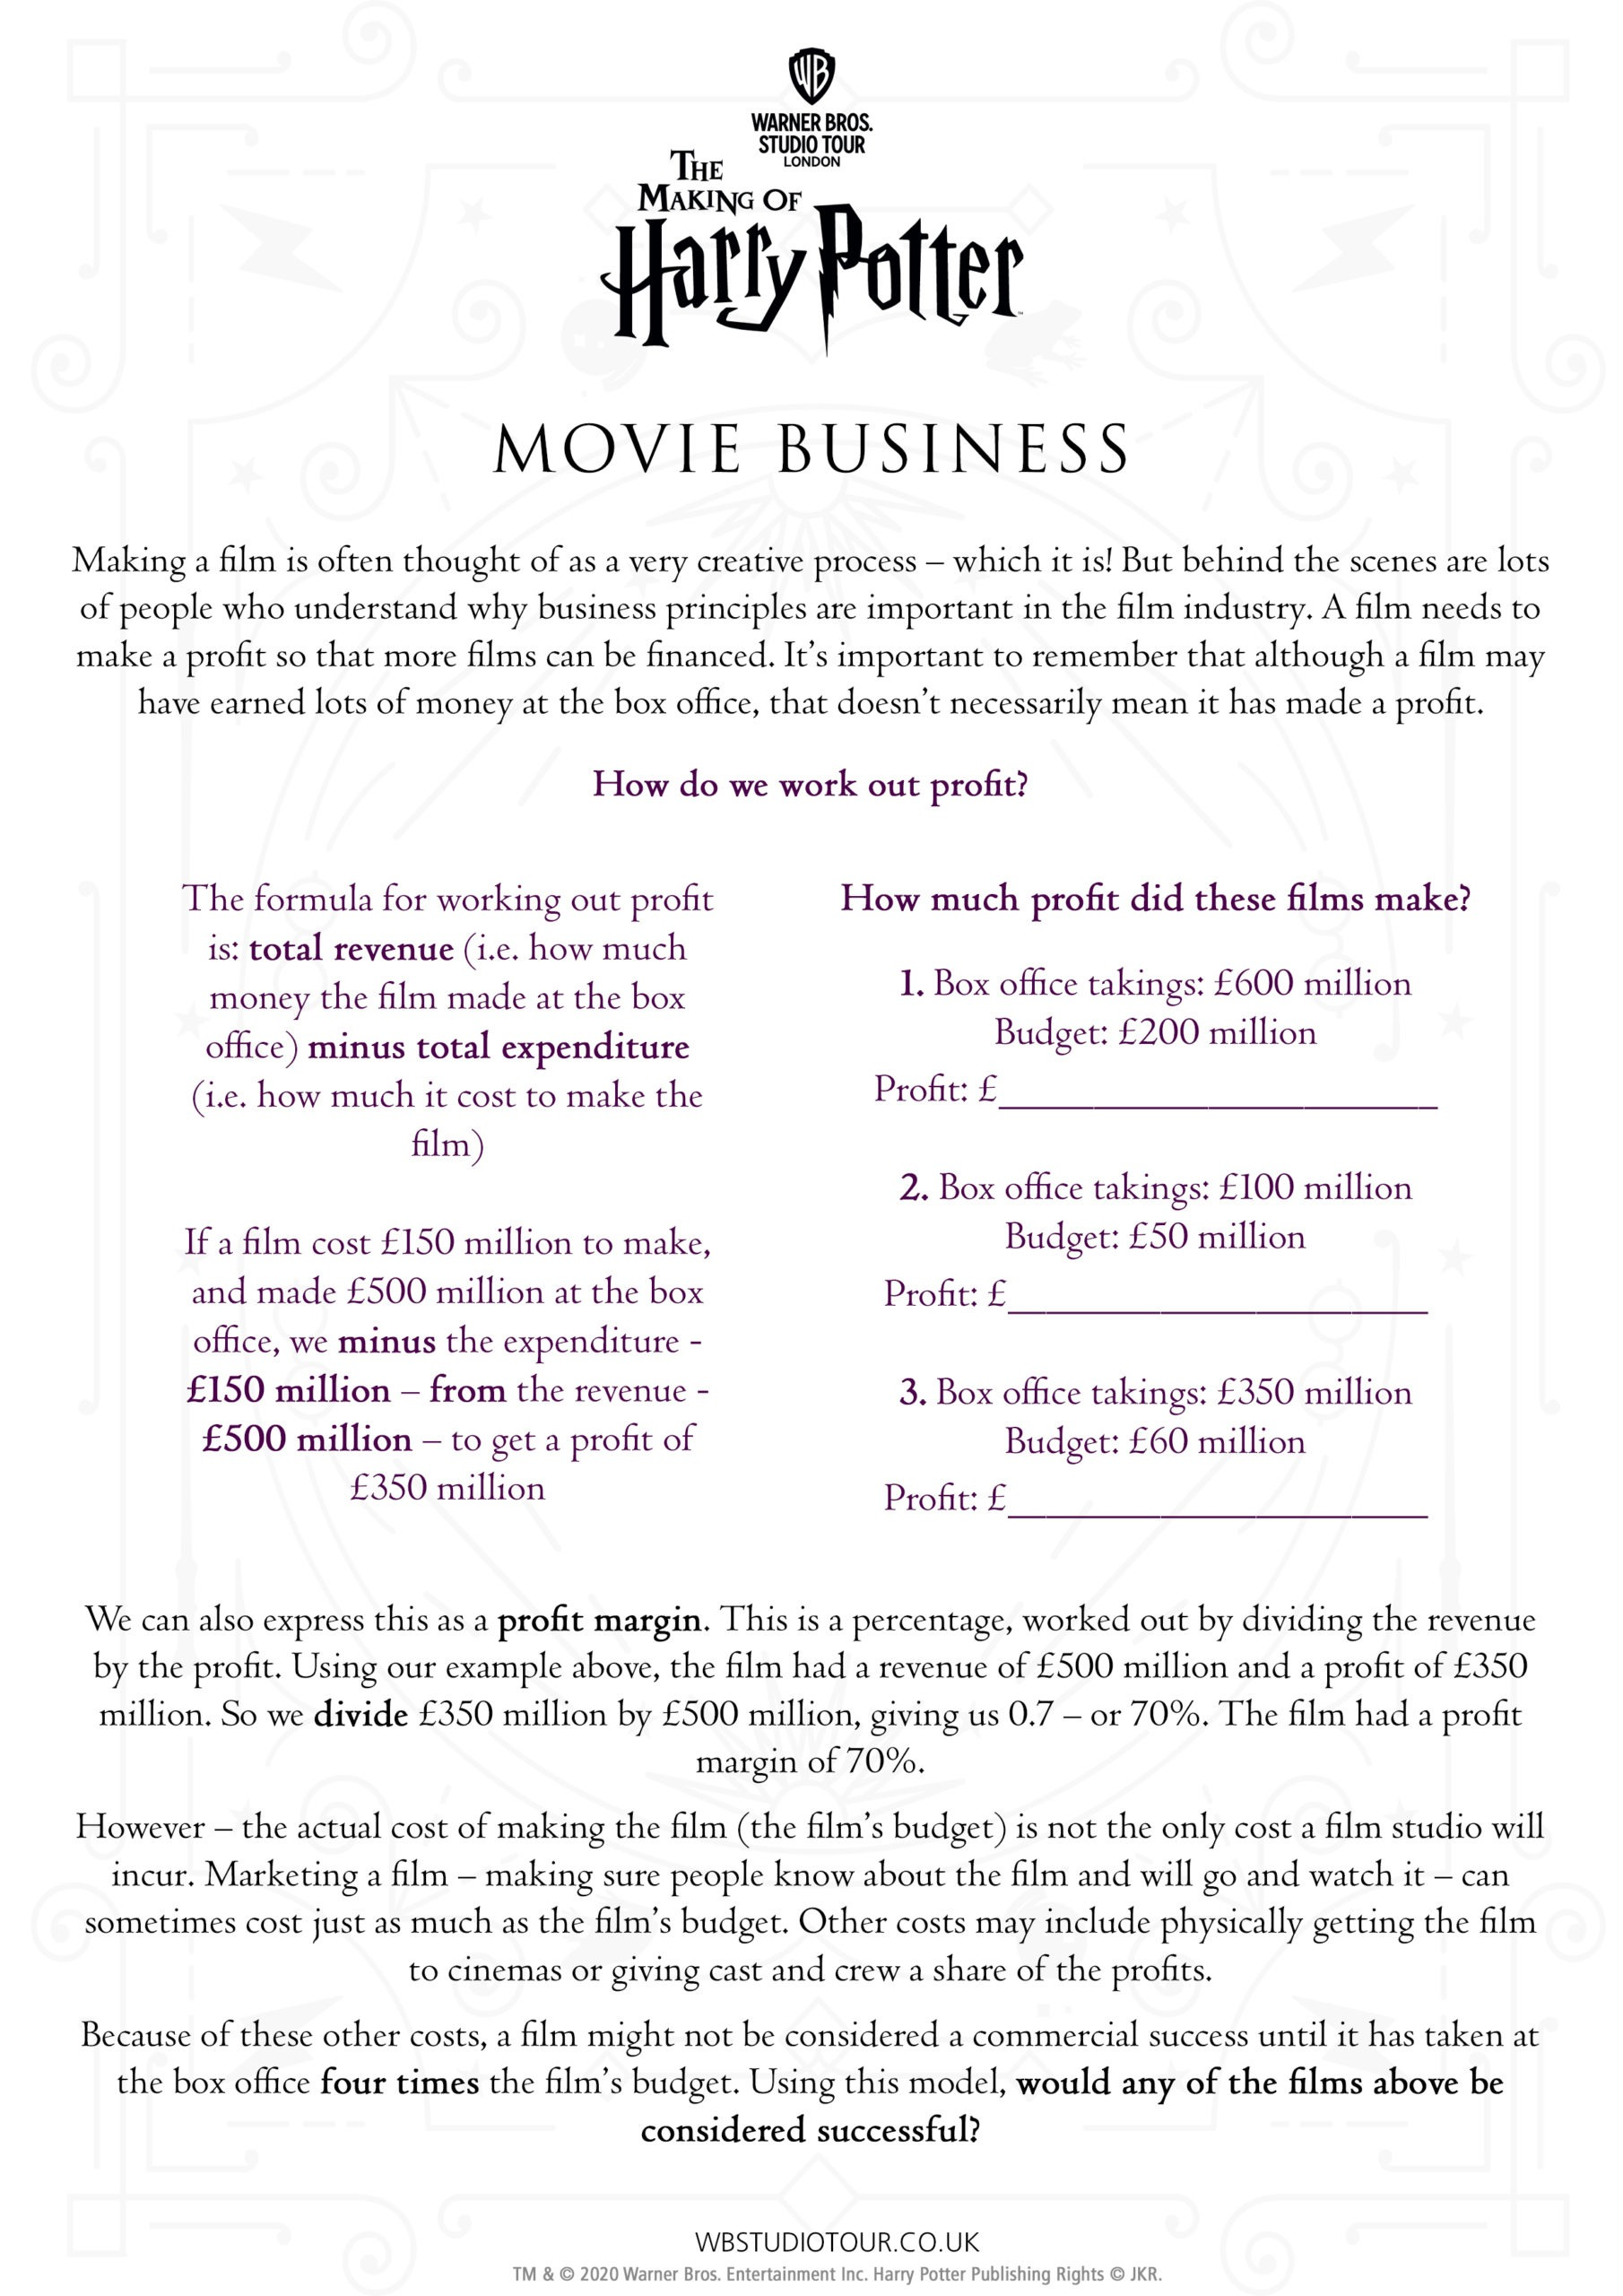 Movie Business activity worksheets page 1 - Studio Tour at Home